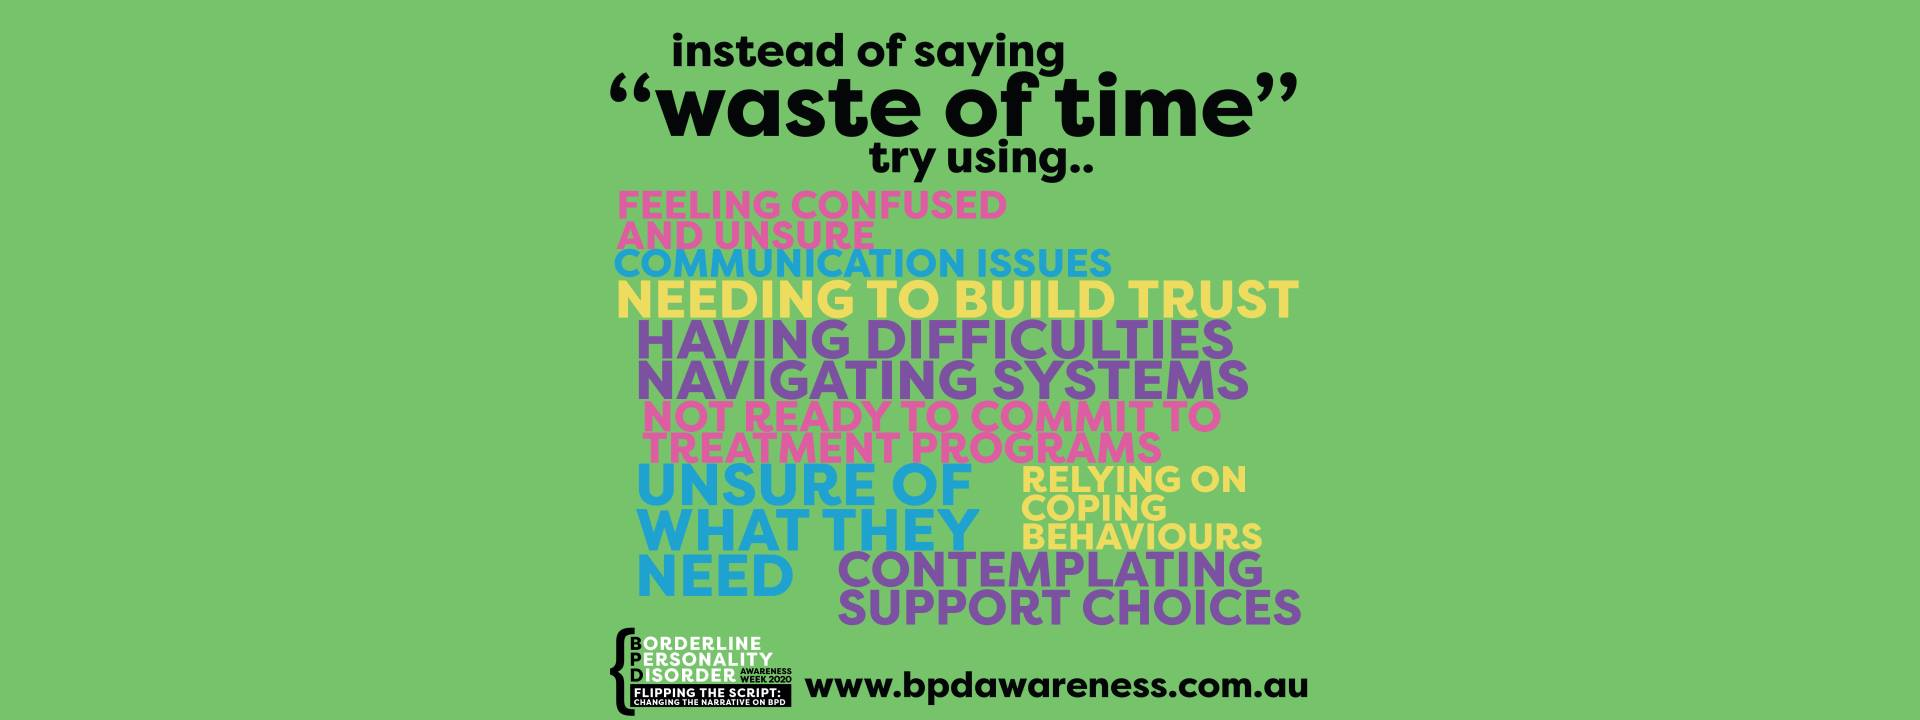 BPD Awareness Week - Not a Waste of Time